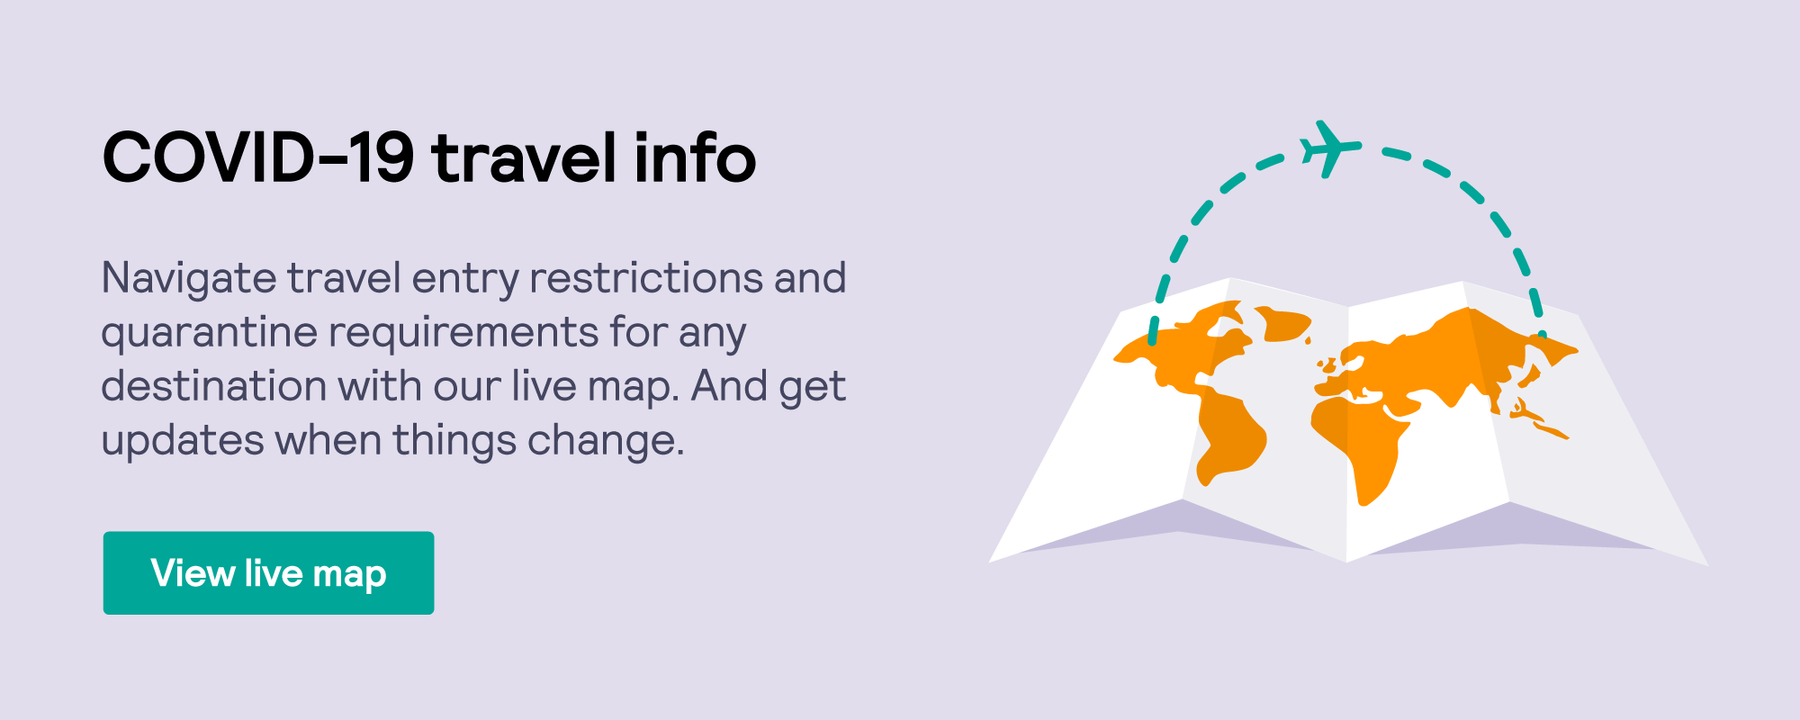 Skyscanner's COVID-19 travel info map